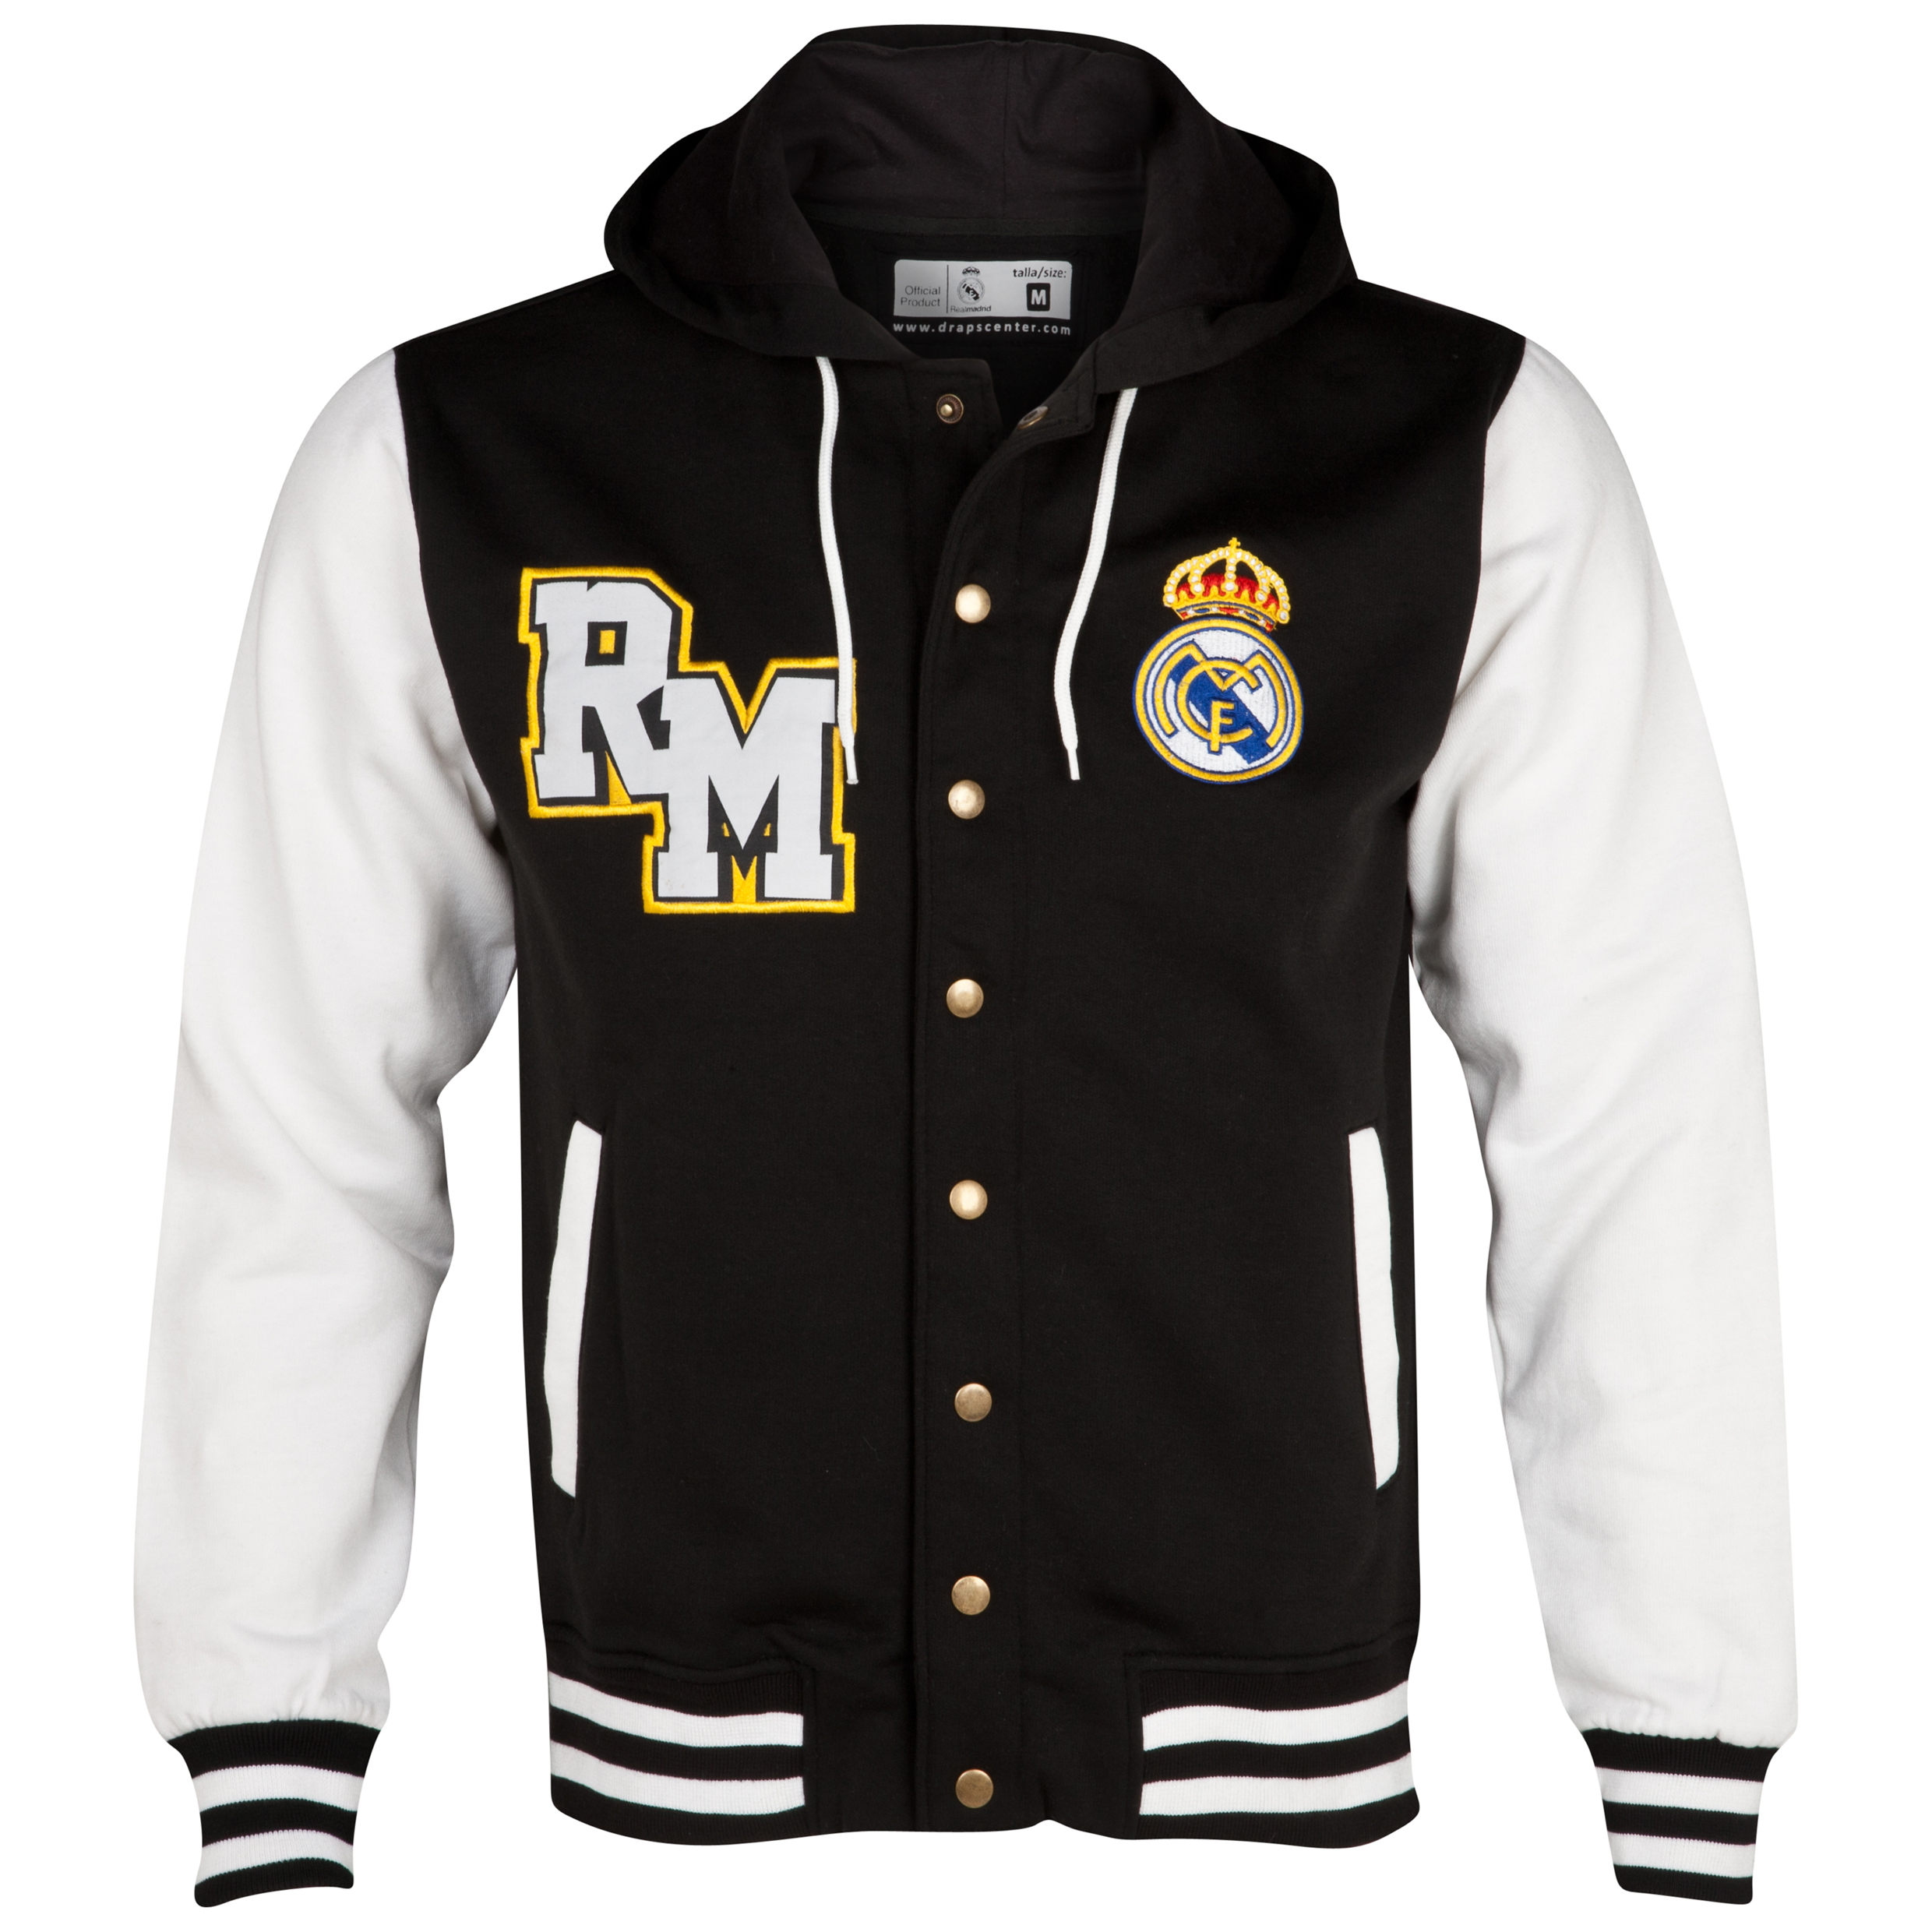 Chaqueta bisbol Real Madrid - Blanco/negro